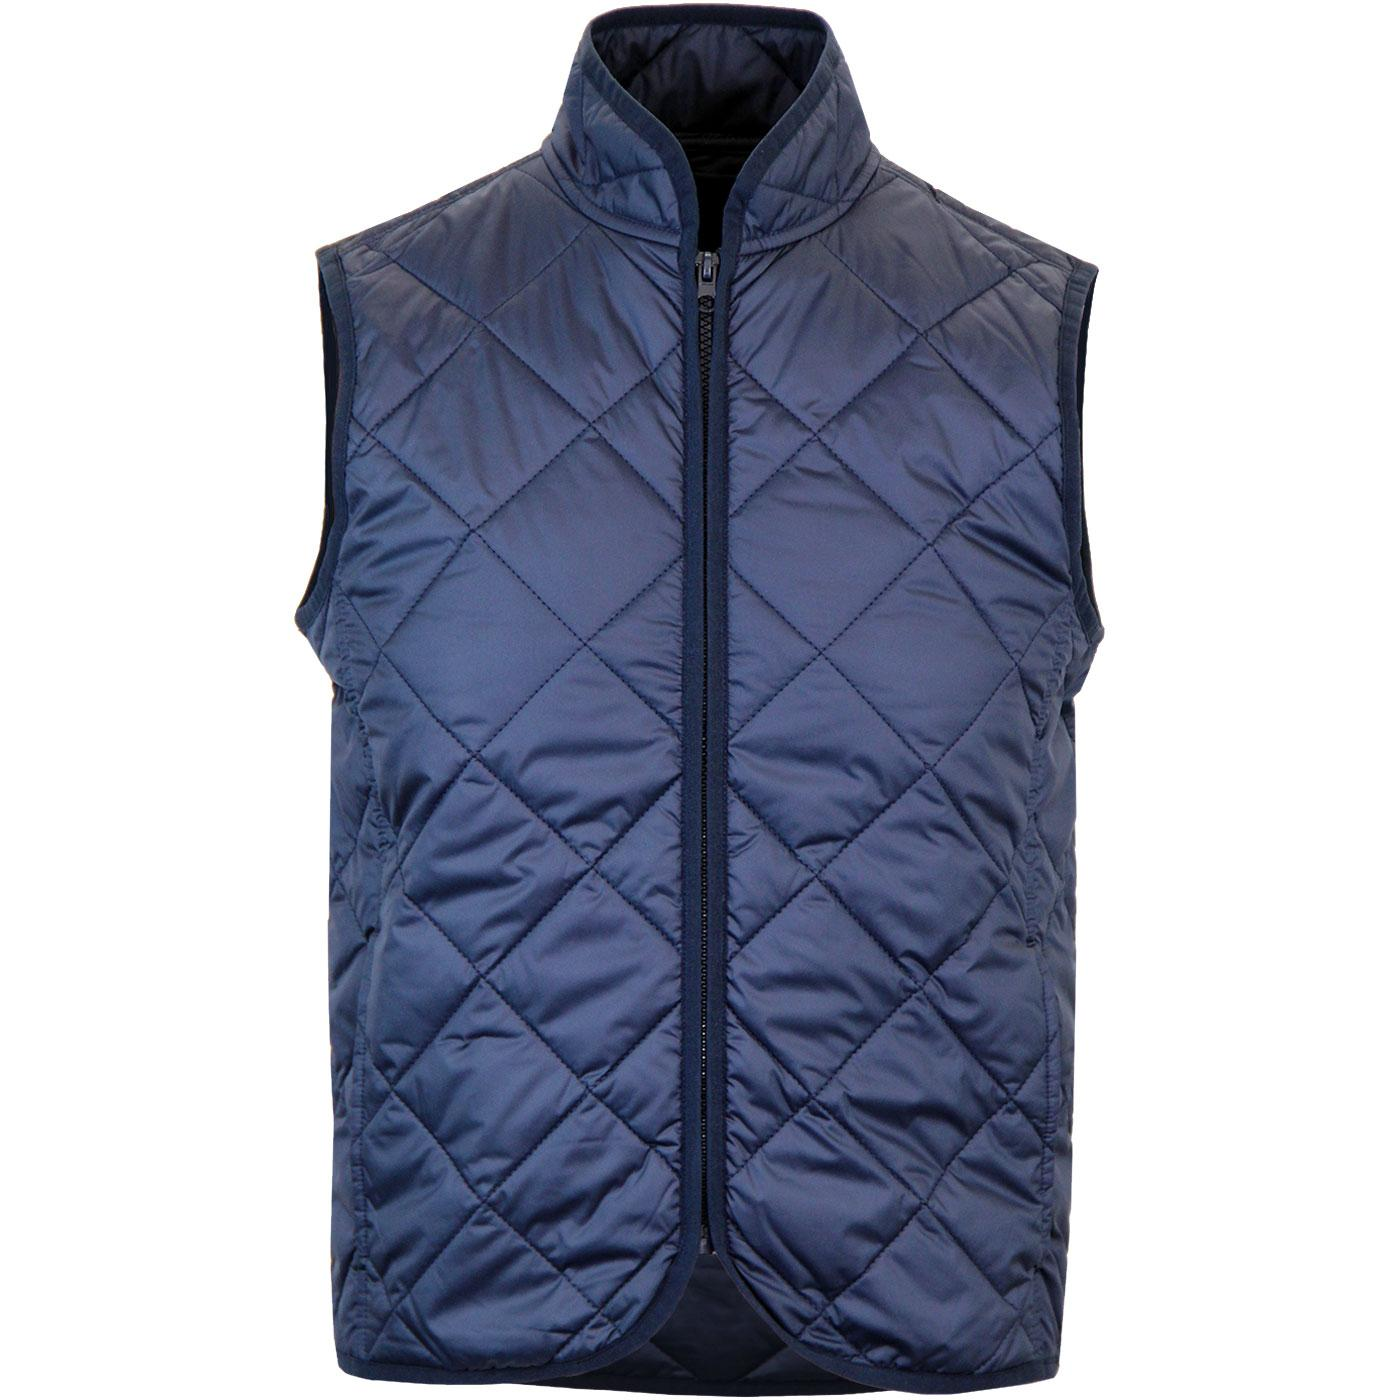 7a79dd10e7 BARACUTA Men s Retro Quilted Gilet Jacket in Navy